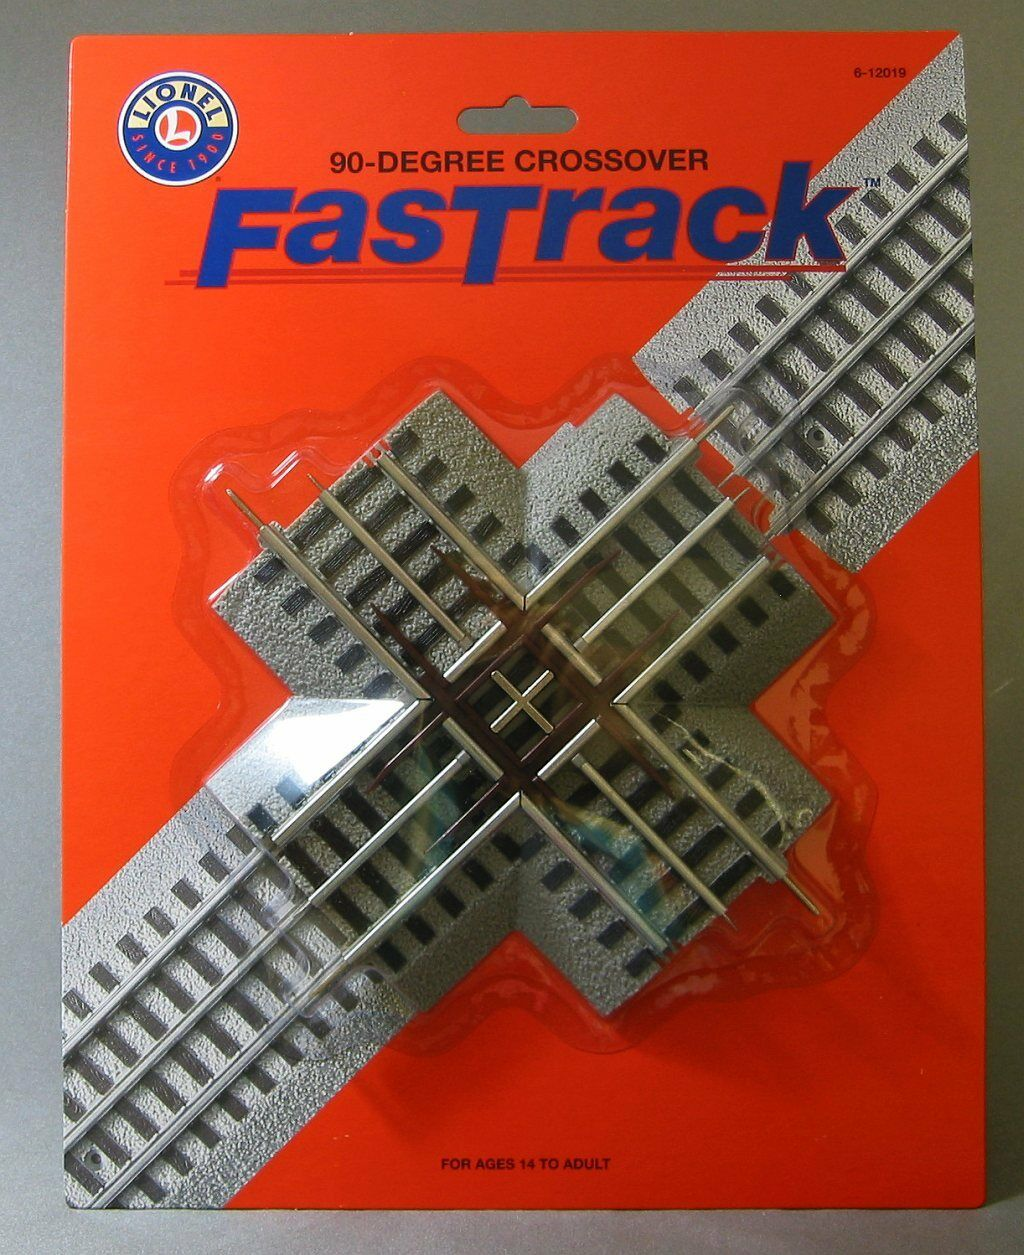 Lionel Fastrack 90 Degree Cross Over Train Track Fasttrack O Gauge 6 Trains Supero Remote Control Switches No 112 1 Of 2 See More